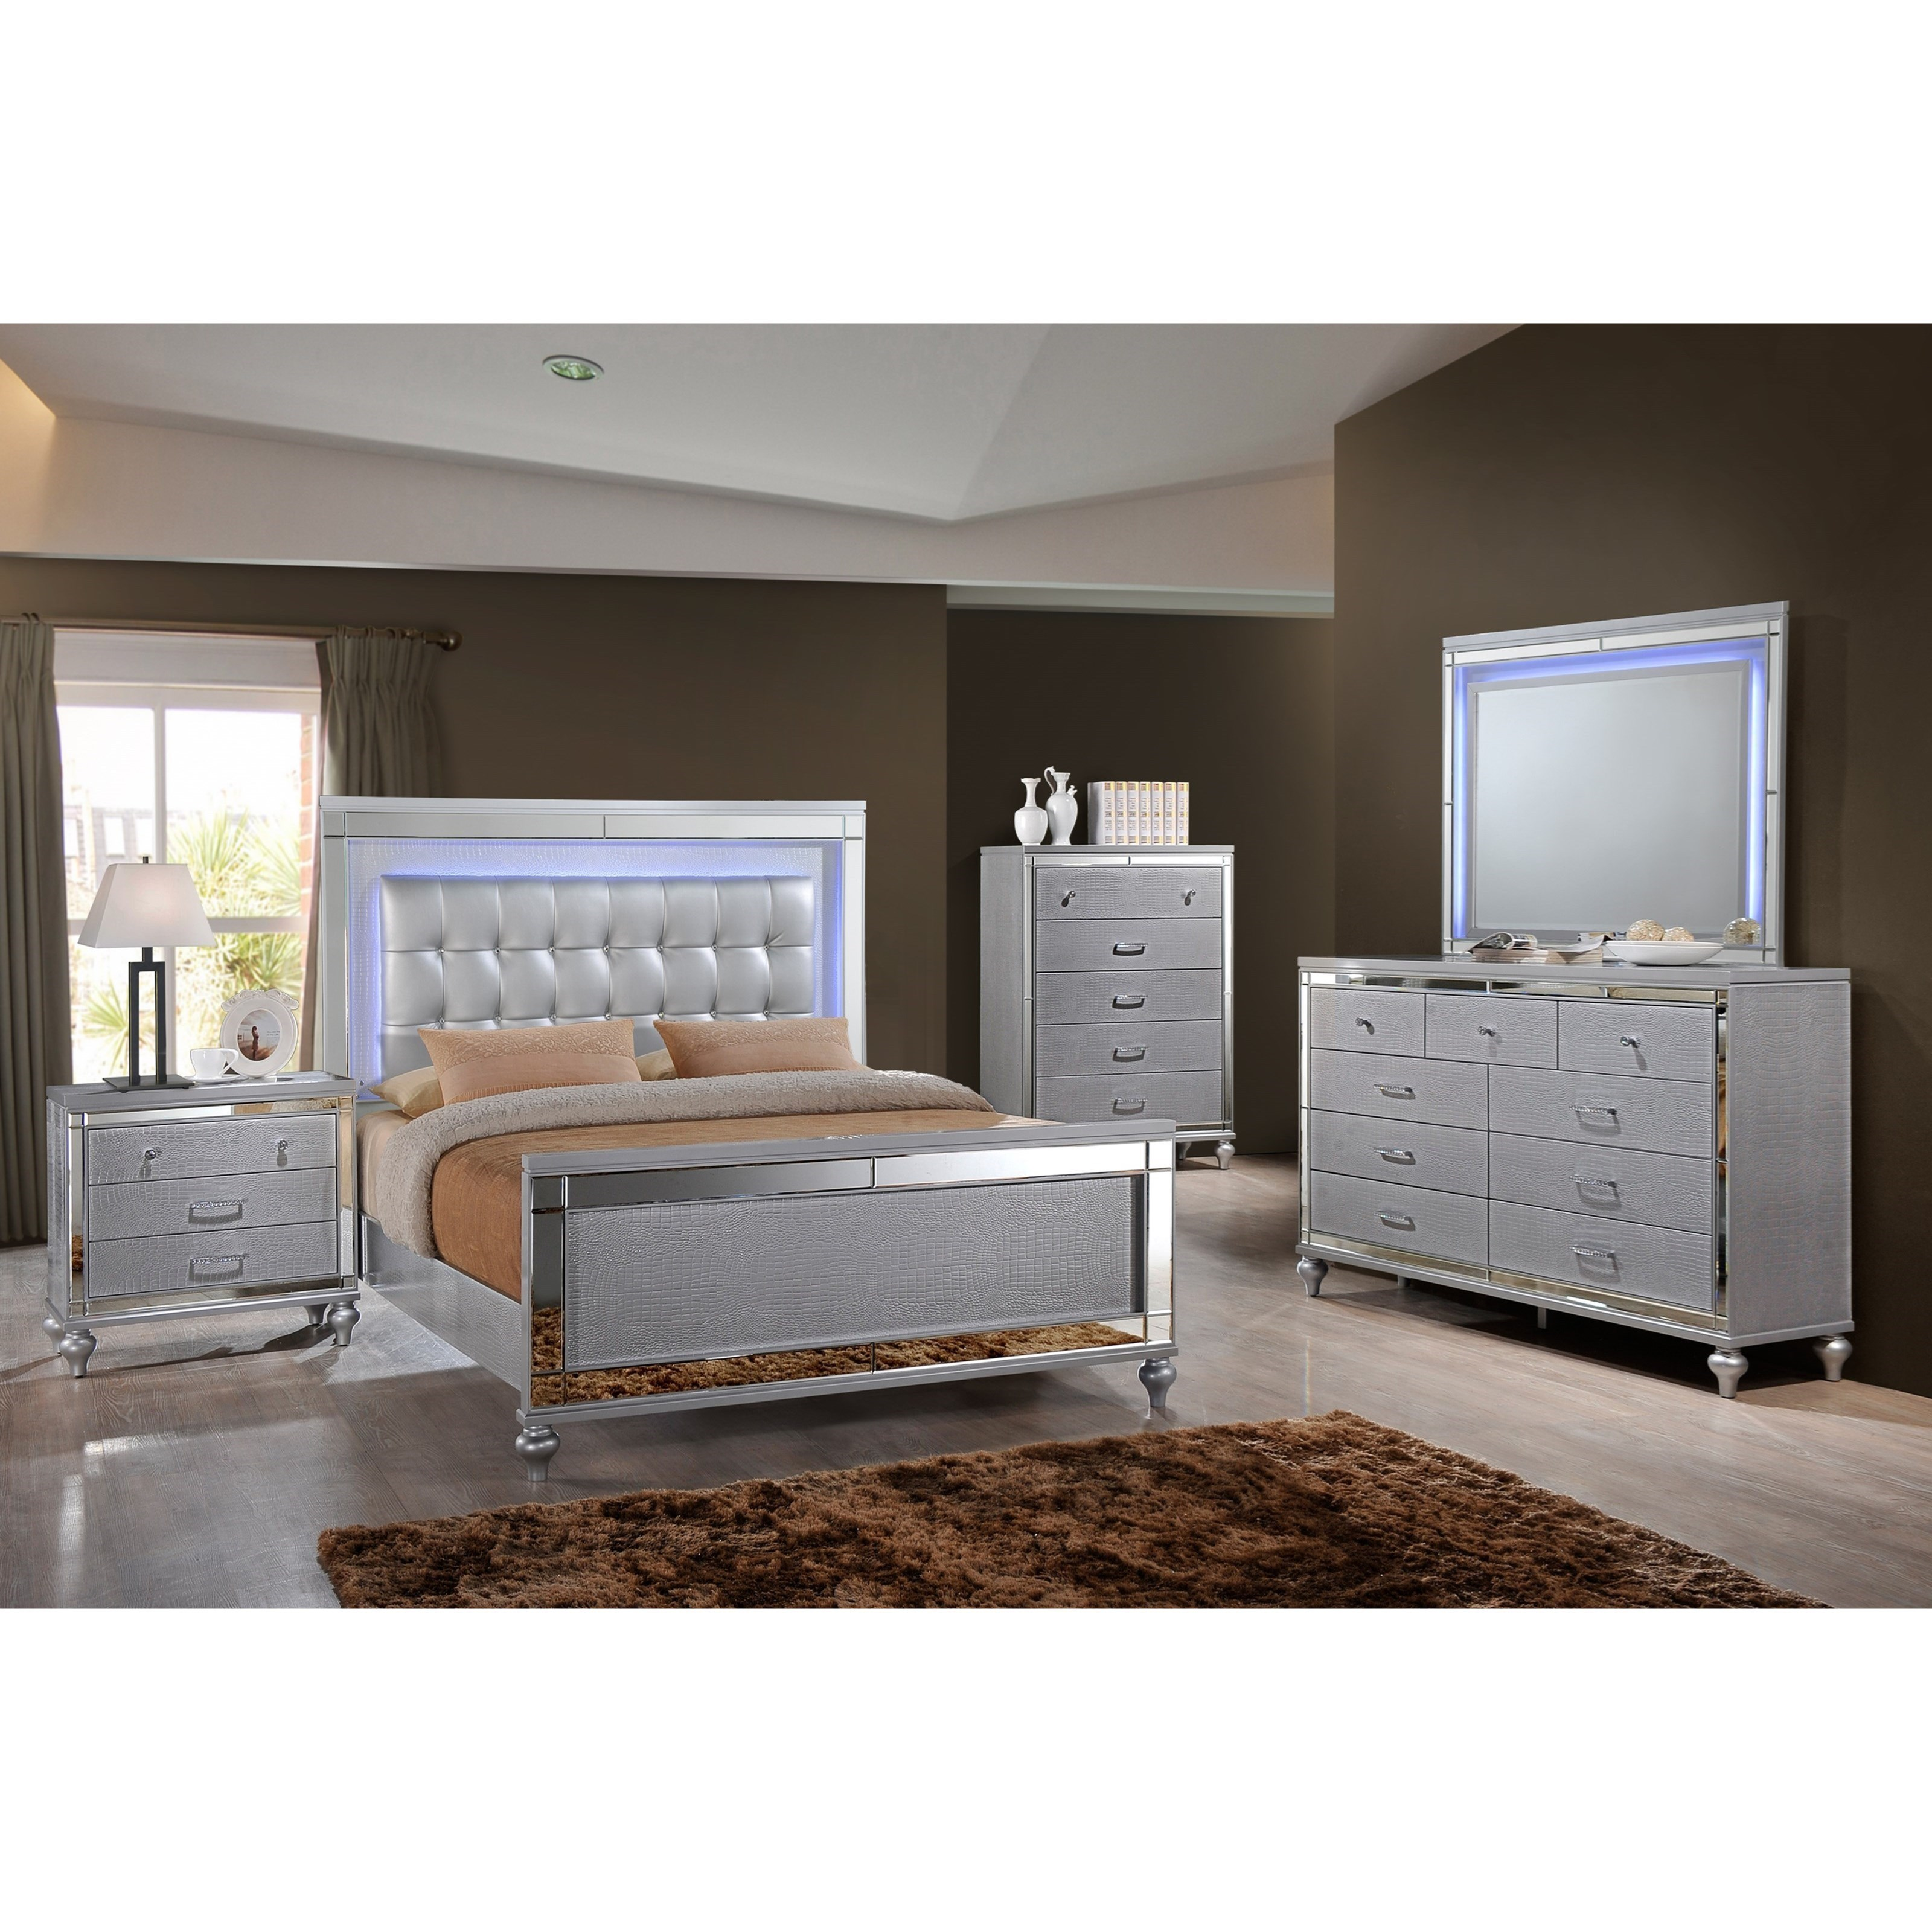 Valentino Queen Bedroom Group by New Classic at Beck's Furniture